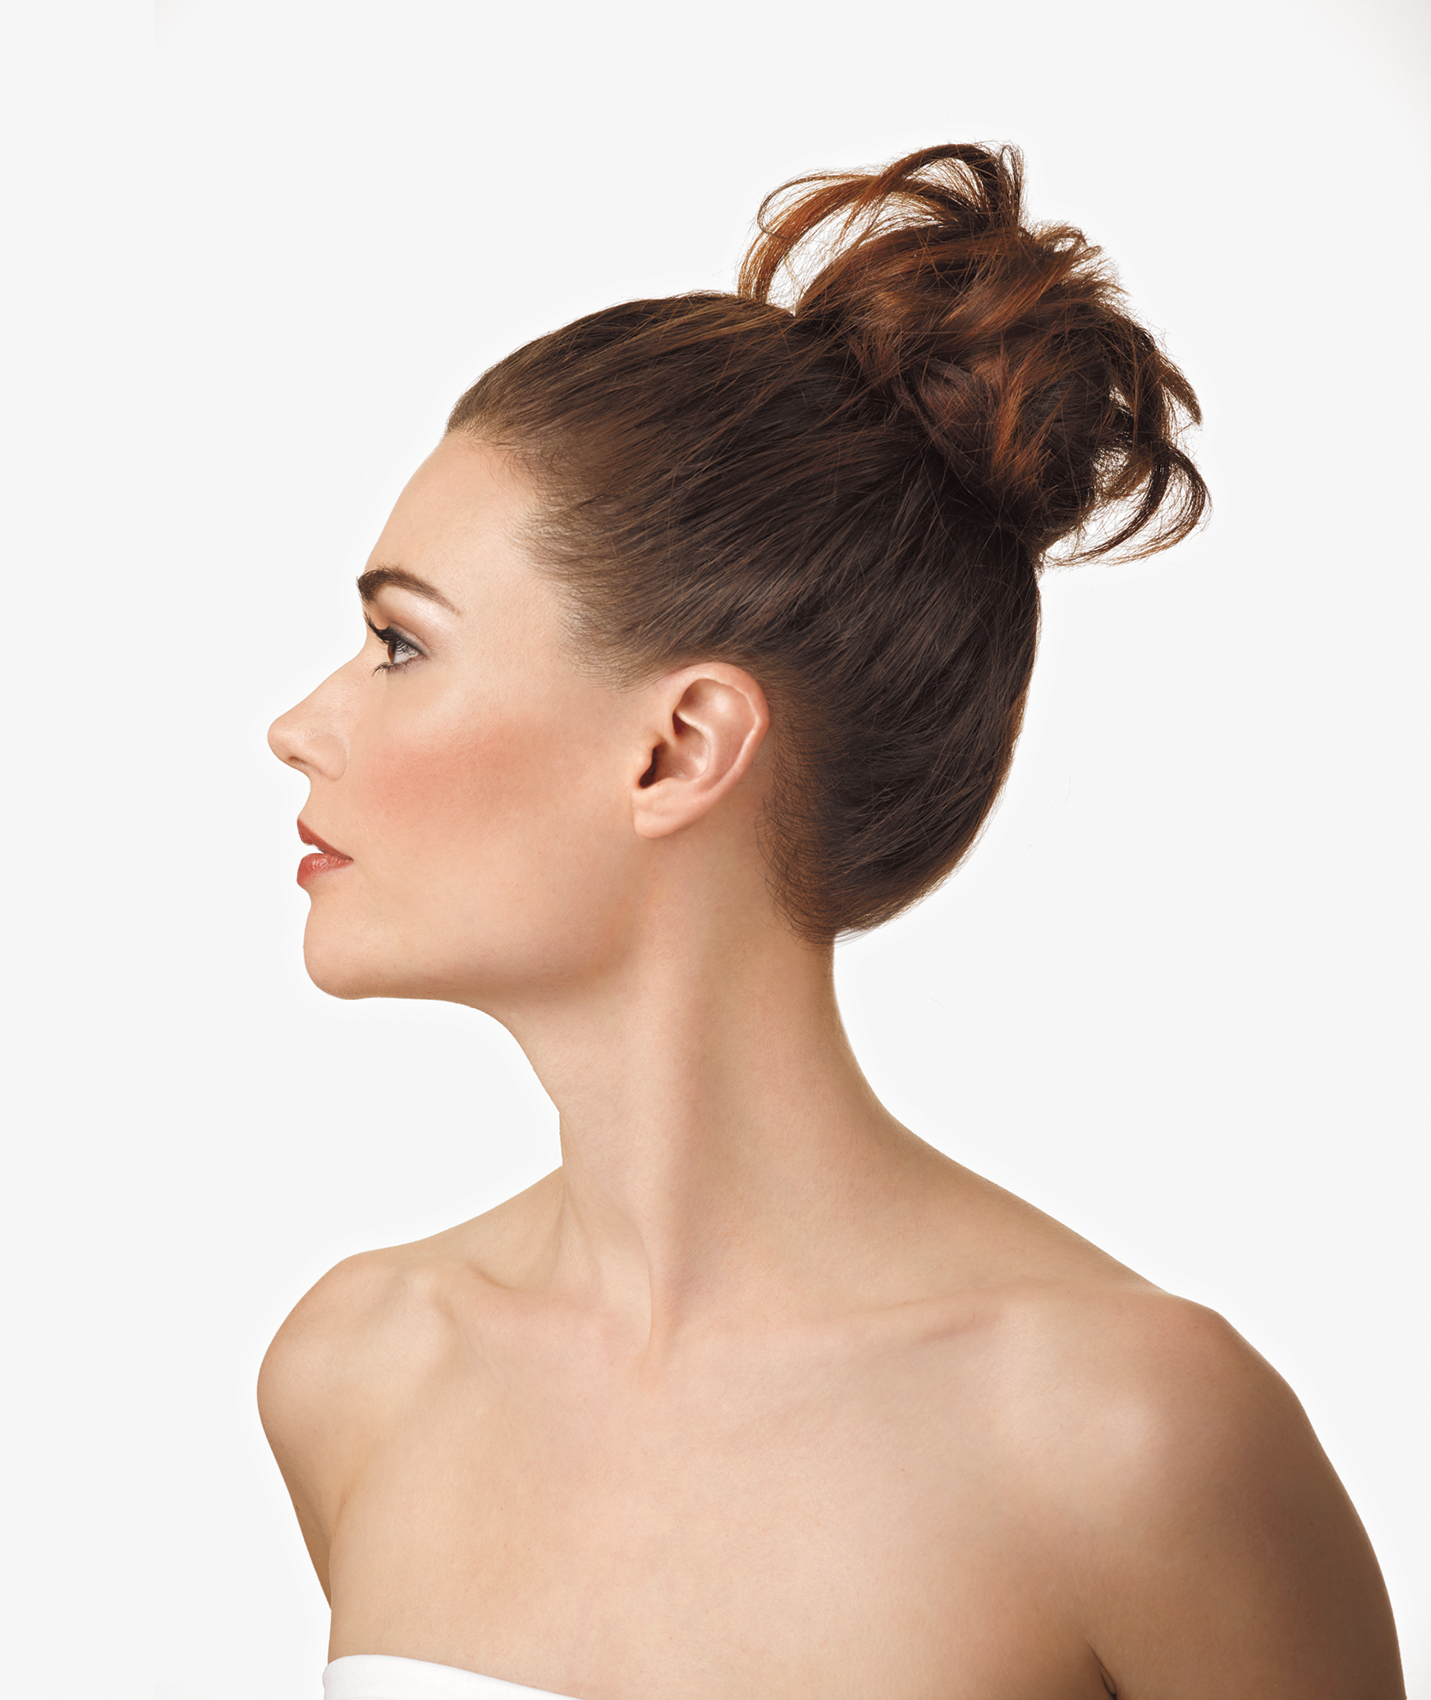 Woman with topknot